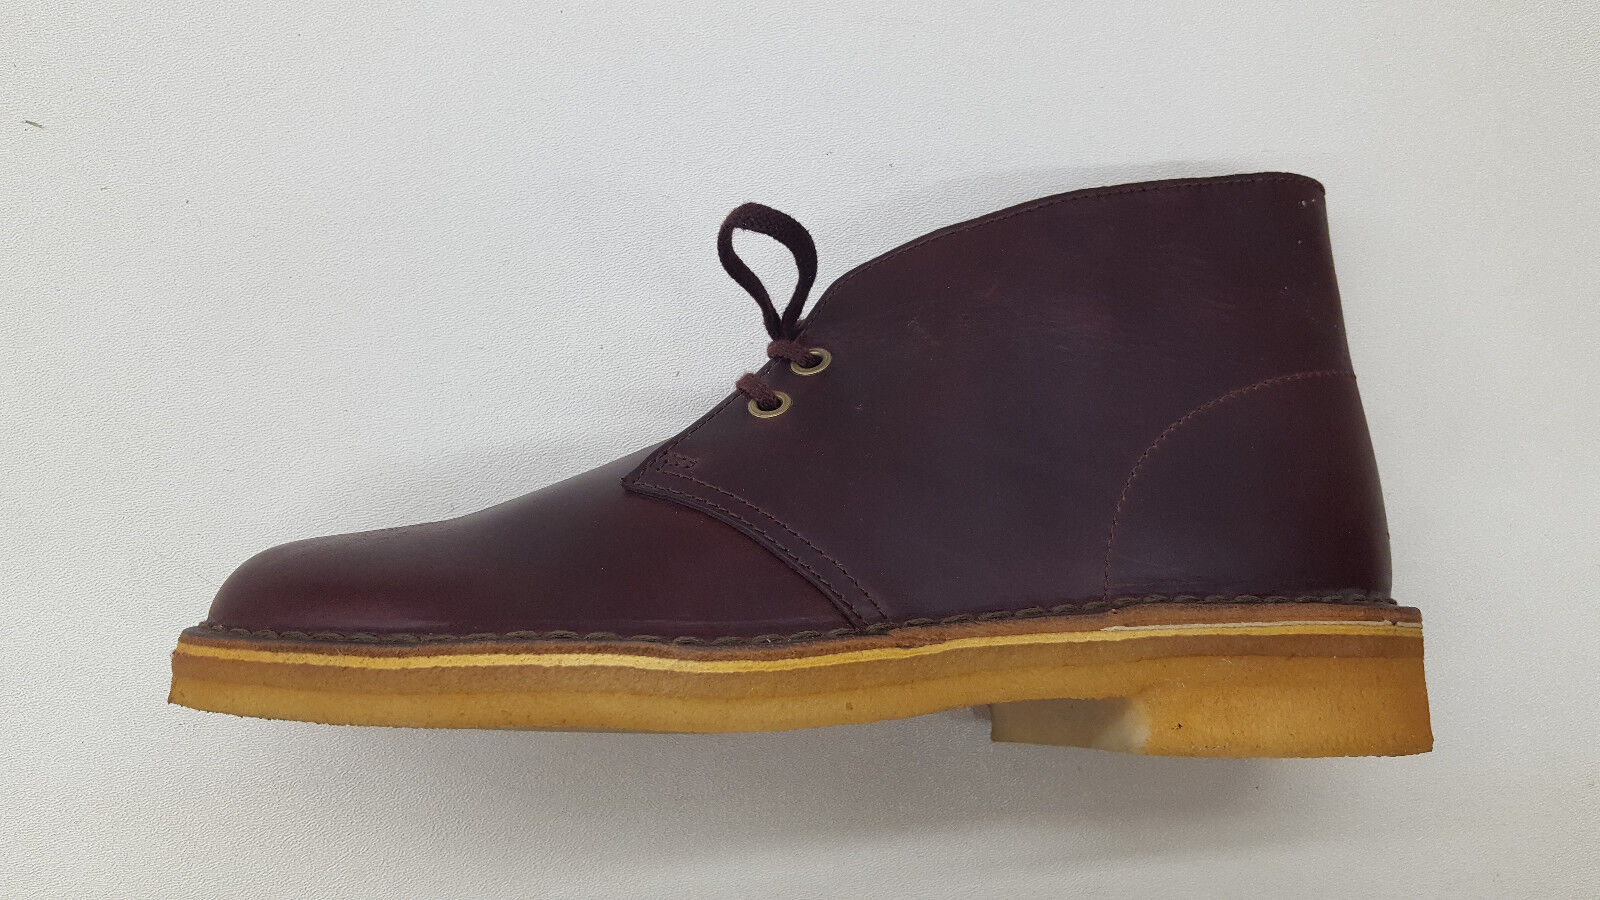 89fb5dbcc7788 CLARKS ORIGINALS DESERT BOOT HORWEEN HORWEEN HORWEEN BURGUNDY LEATHER MENS  SHOES BOOTS 09441 d75db0 ...